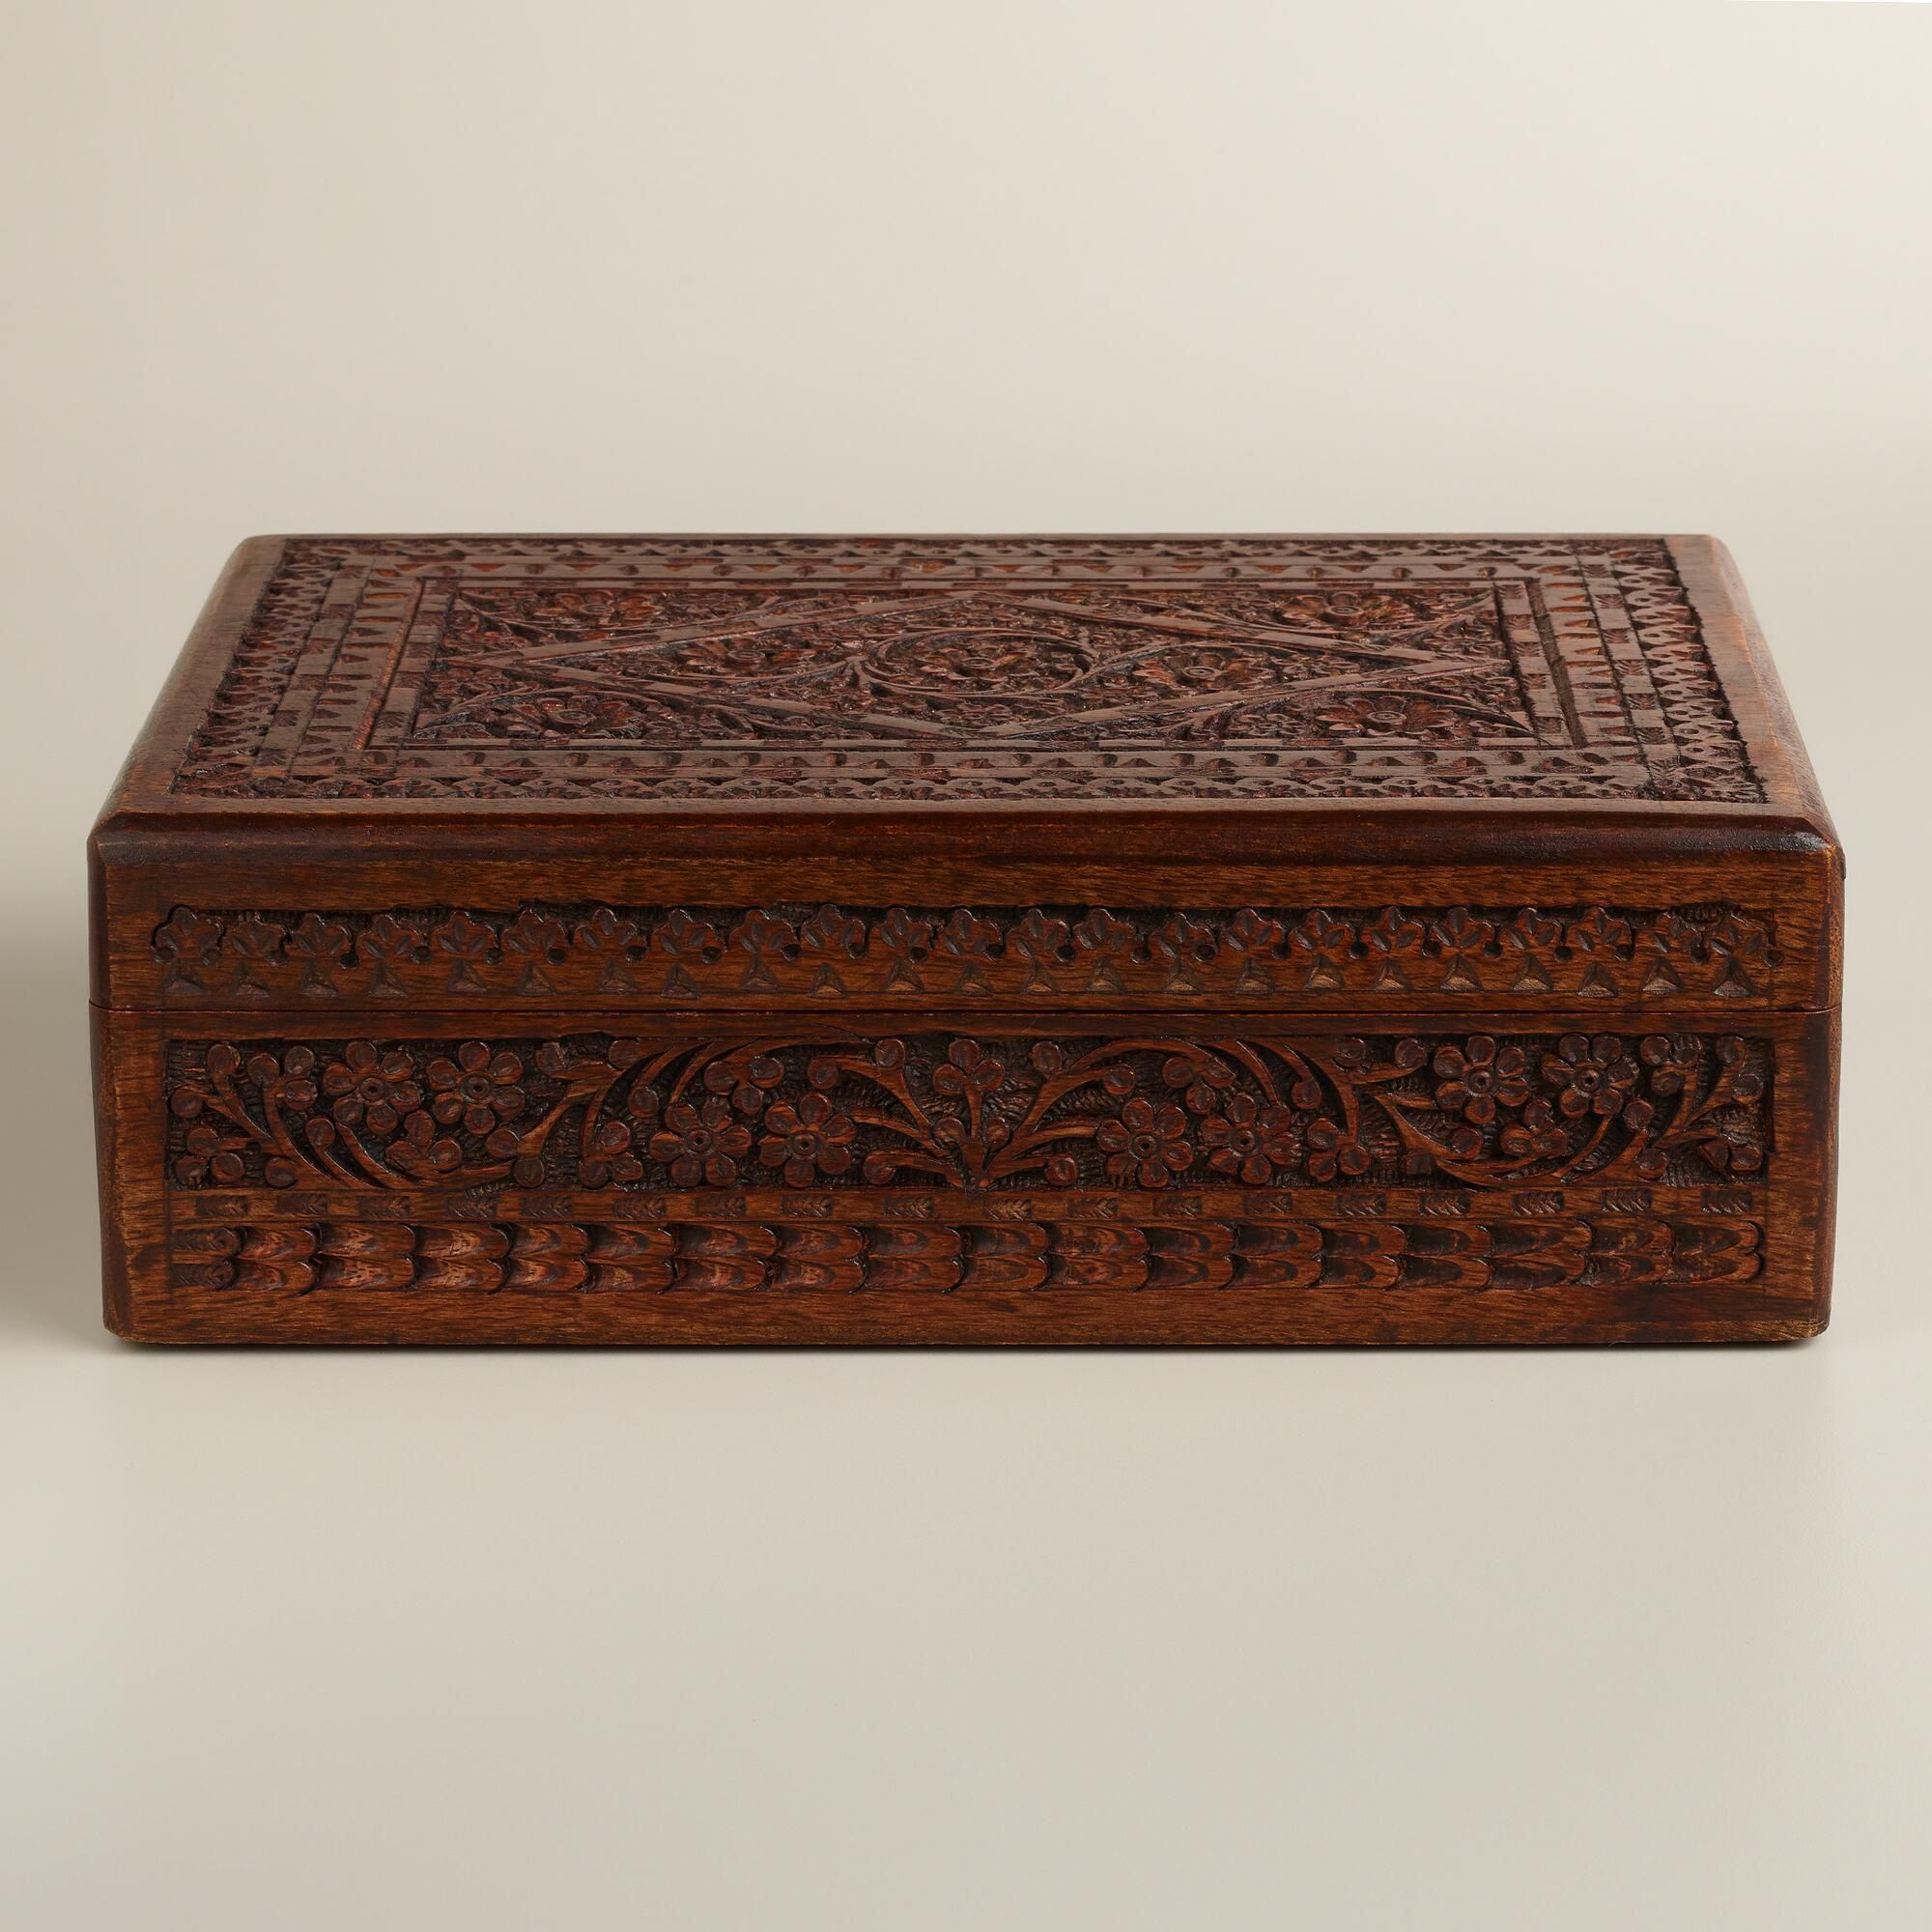 World Market Jewelry Box Gorgeous Espresso Carved Brooklyn Jewelry Box  World Market  Home 2018